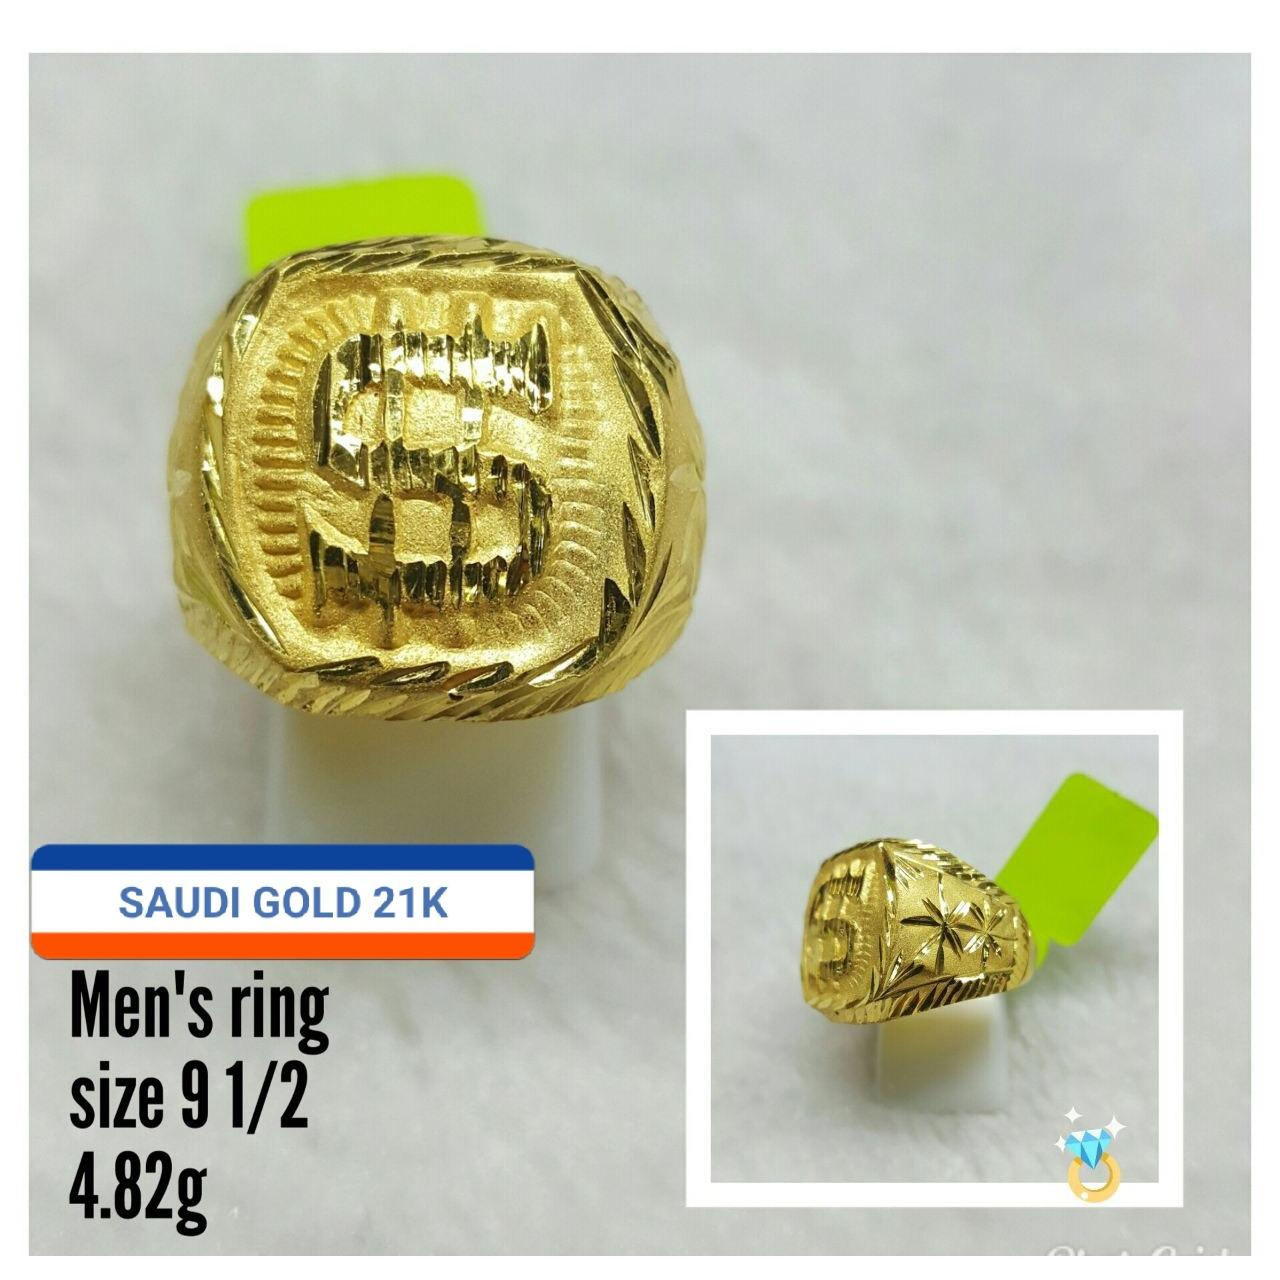 S Gold Ring Designs | Gold Rings For Men For Sale Mens Gold Rings Online Brands Prices